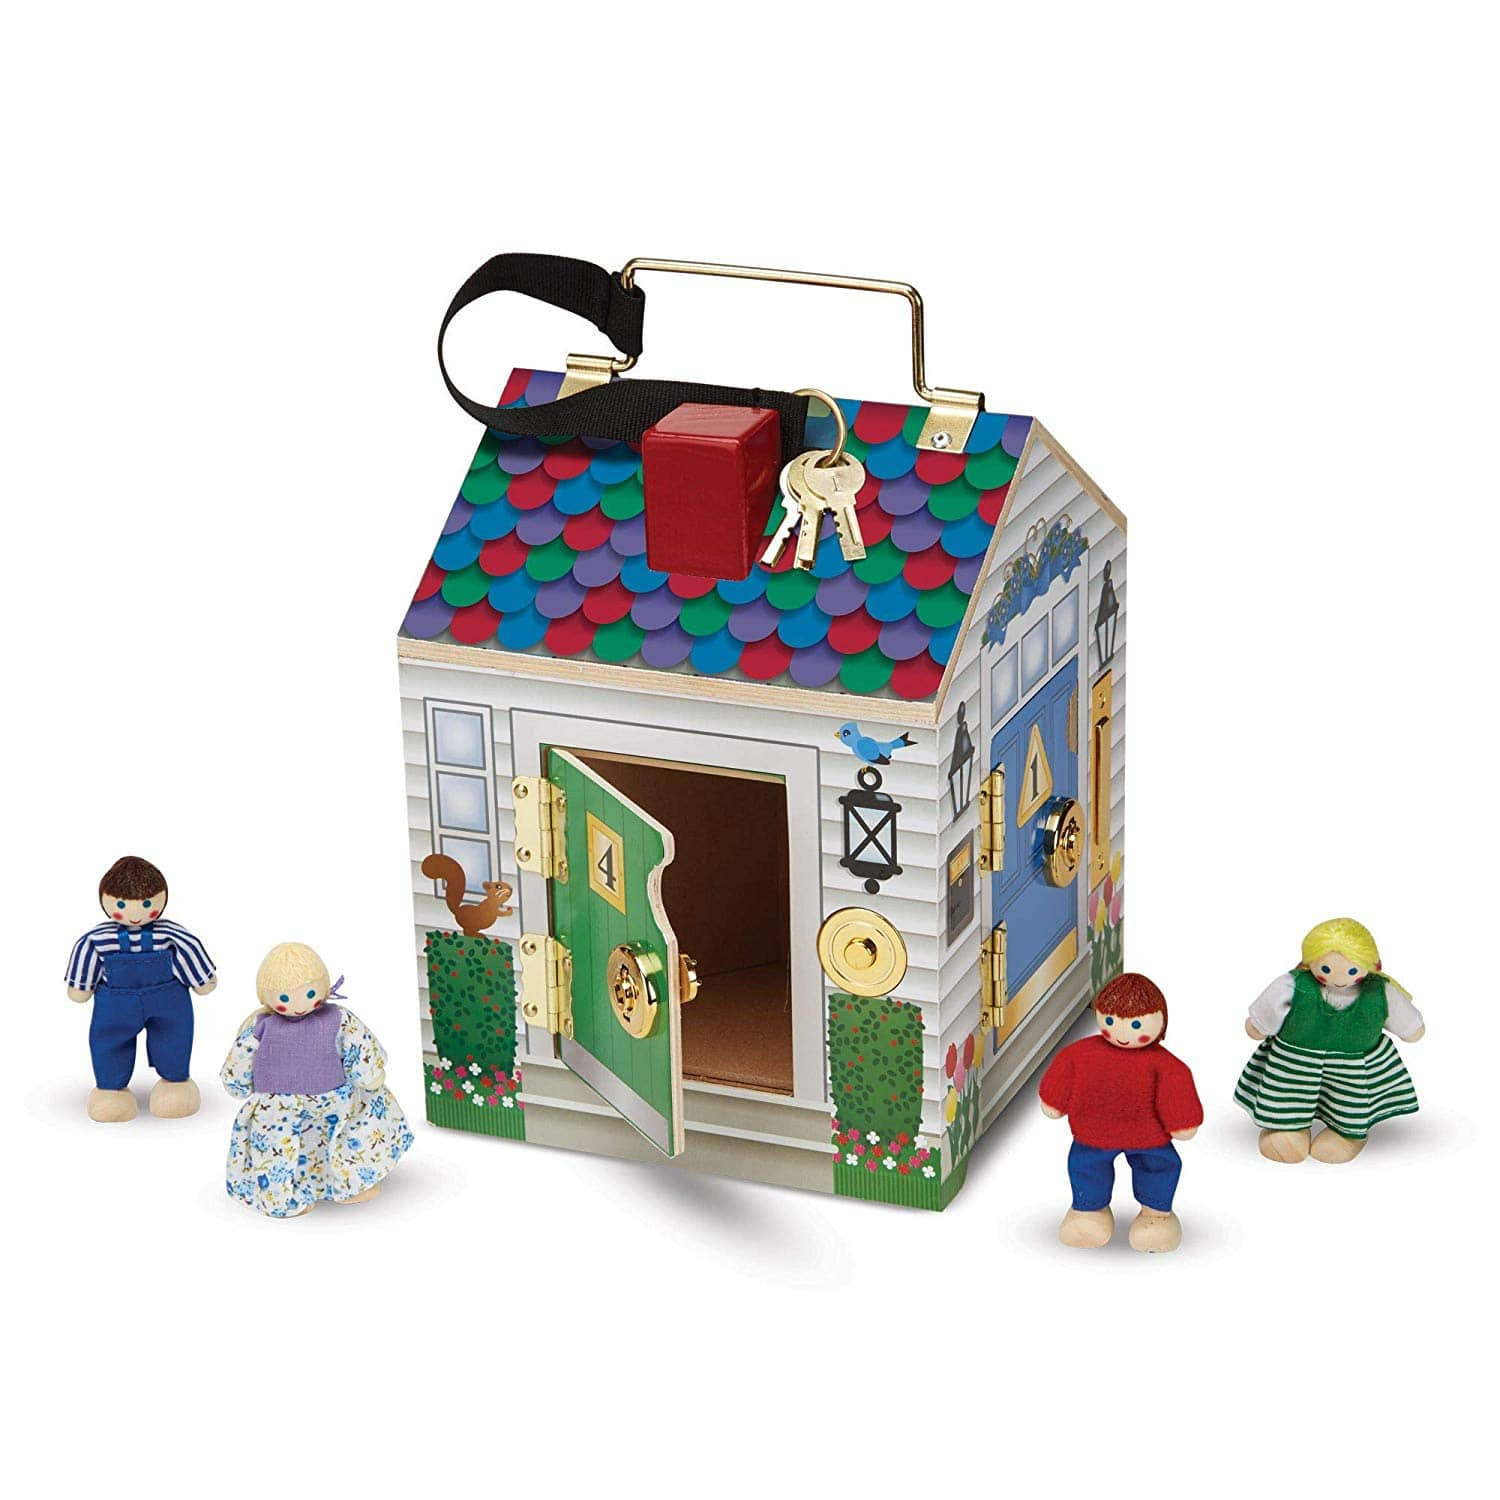 Melissa & Doug Take-Along Wooden Doorbell Dollhouse with Doorbell Sounds, Keys, 4 Poseable Wooden Dolls $15.99(47% off) at Amazon.